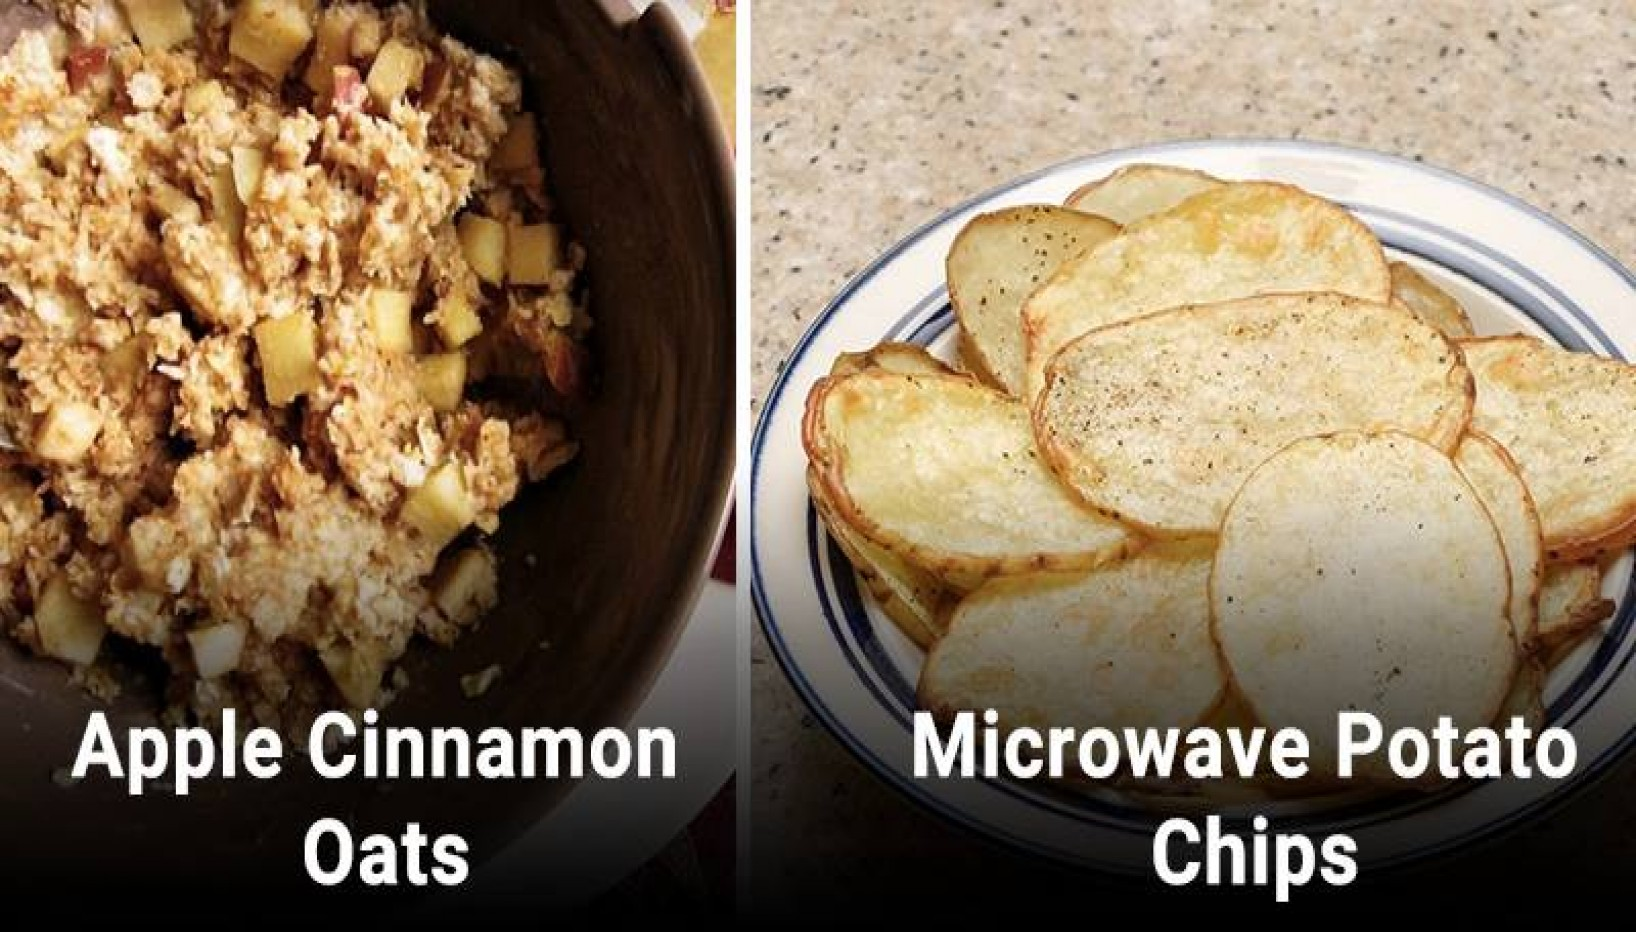 6 Quick Snacks You Can Make In The Microwave With Ingredients You Probably Already Have